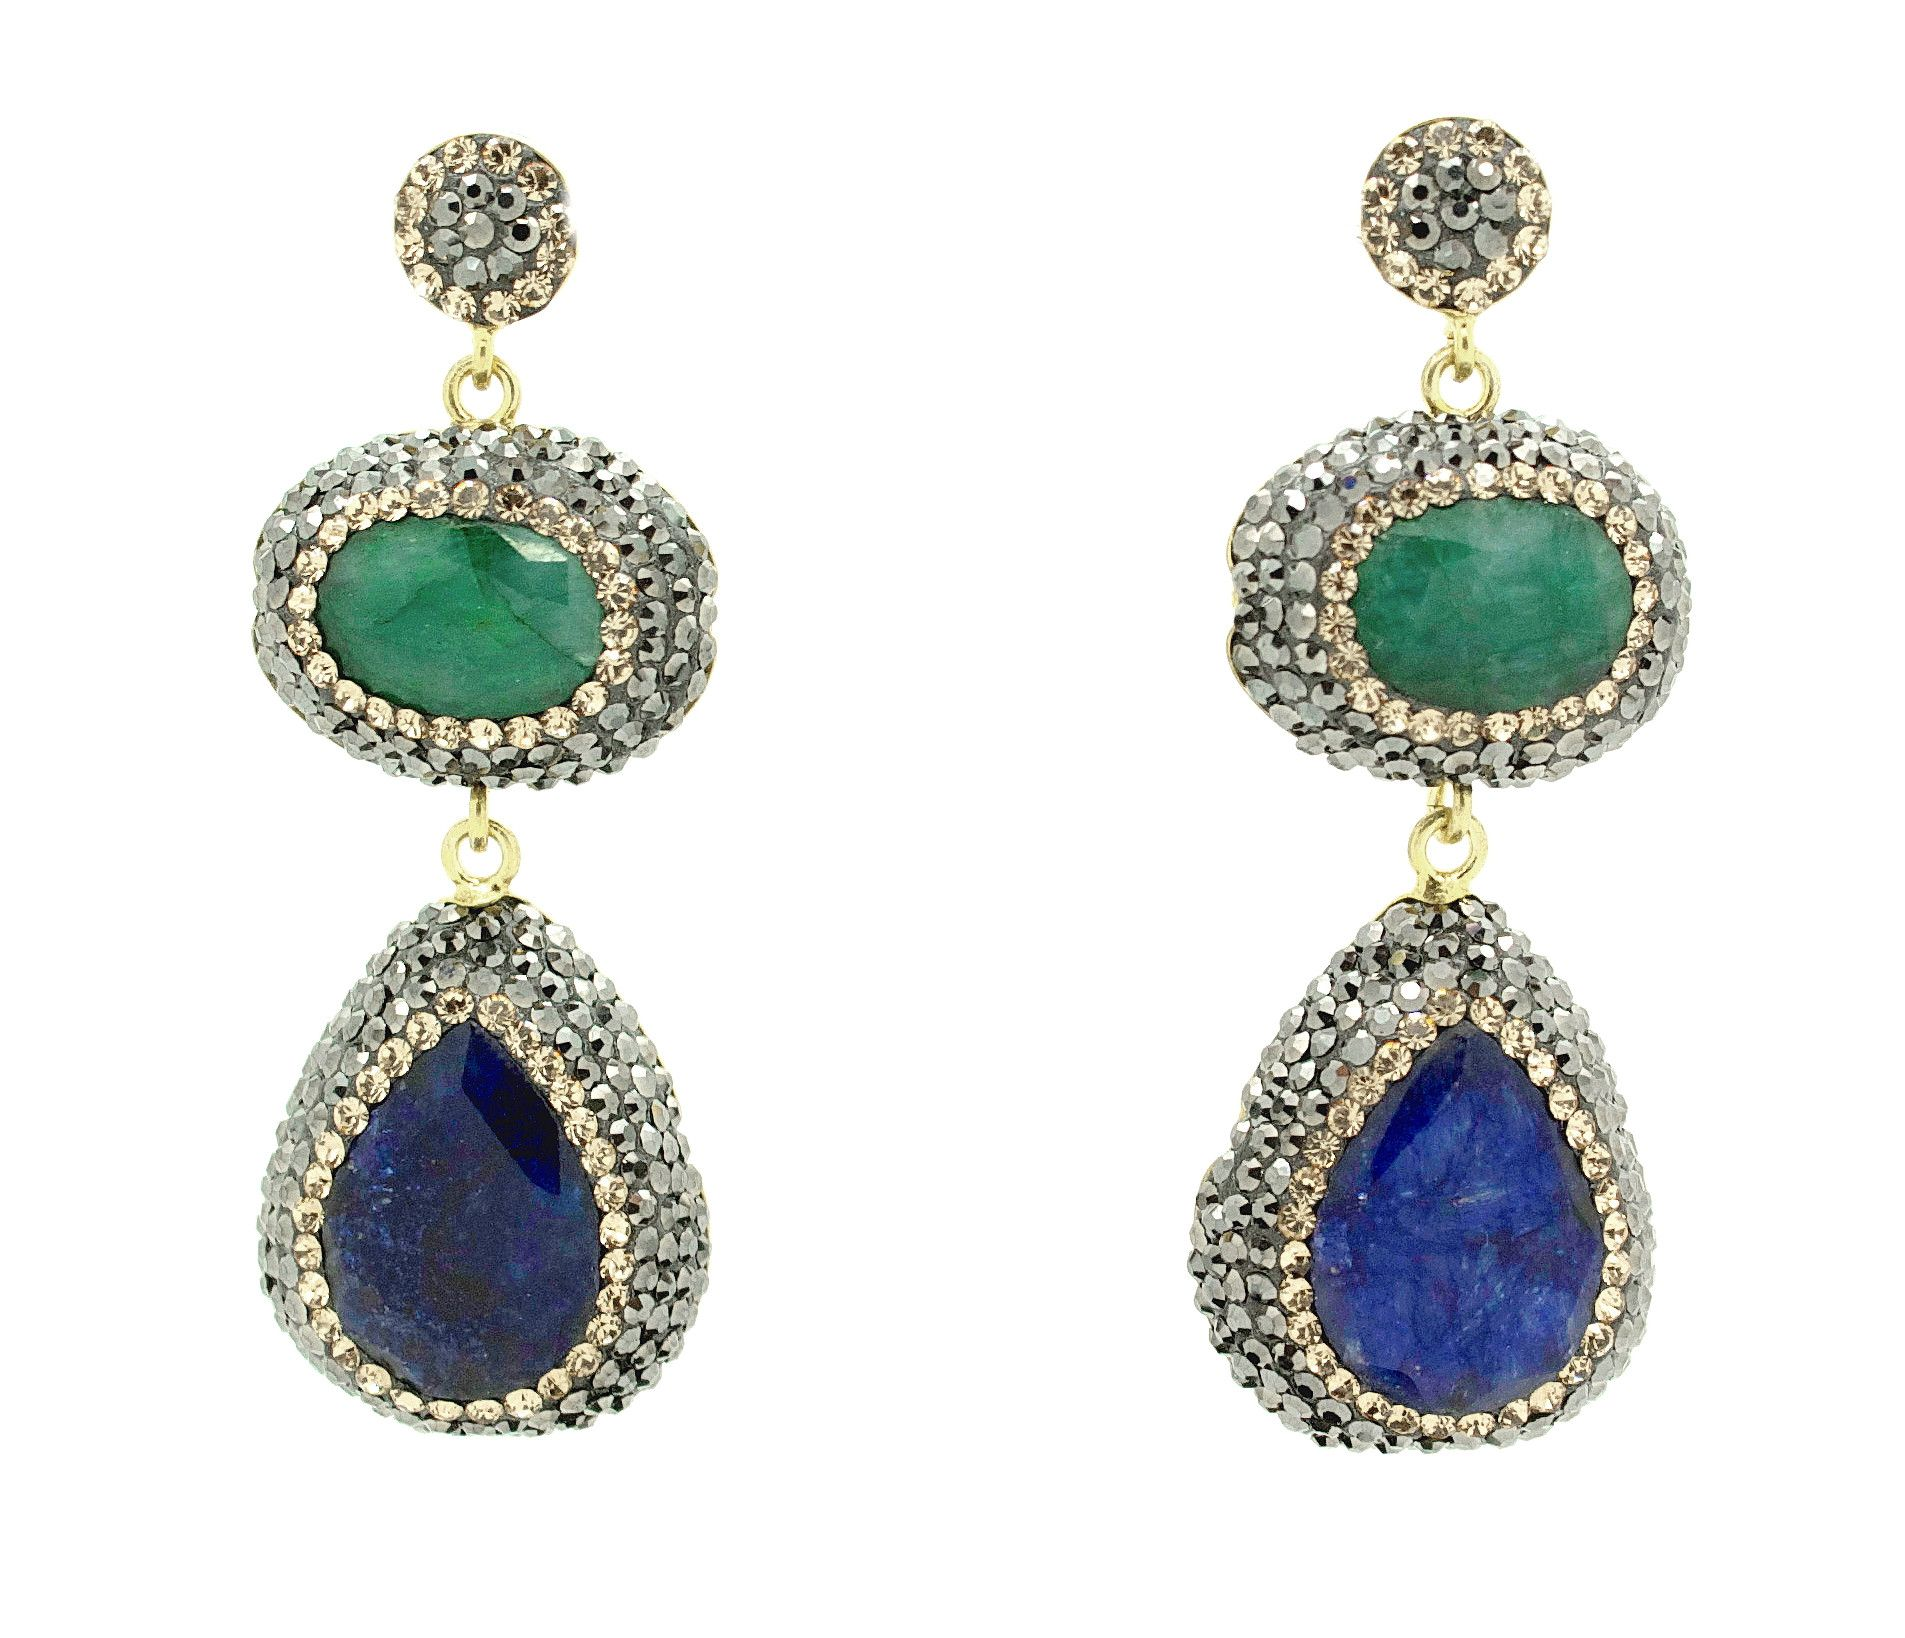 india images price of earrings wear jewelry daily with designs in examples elegant design diamond tanishq